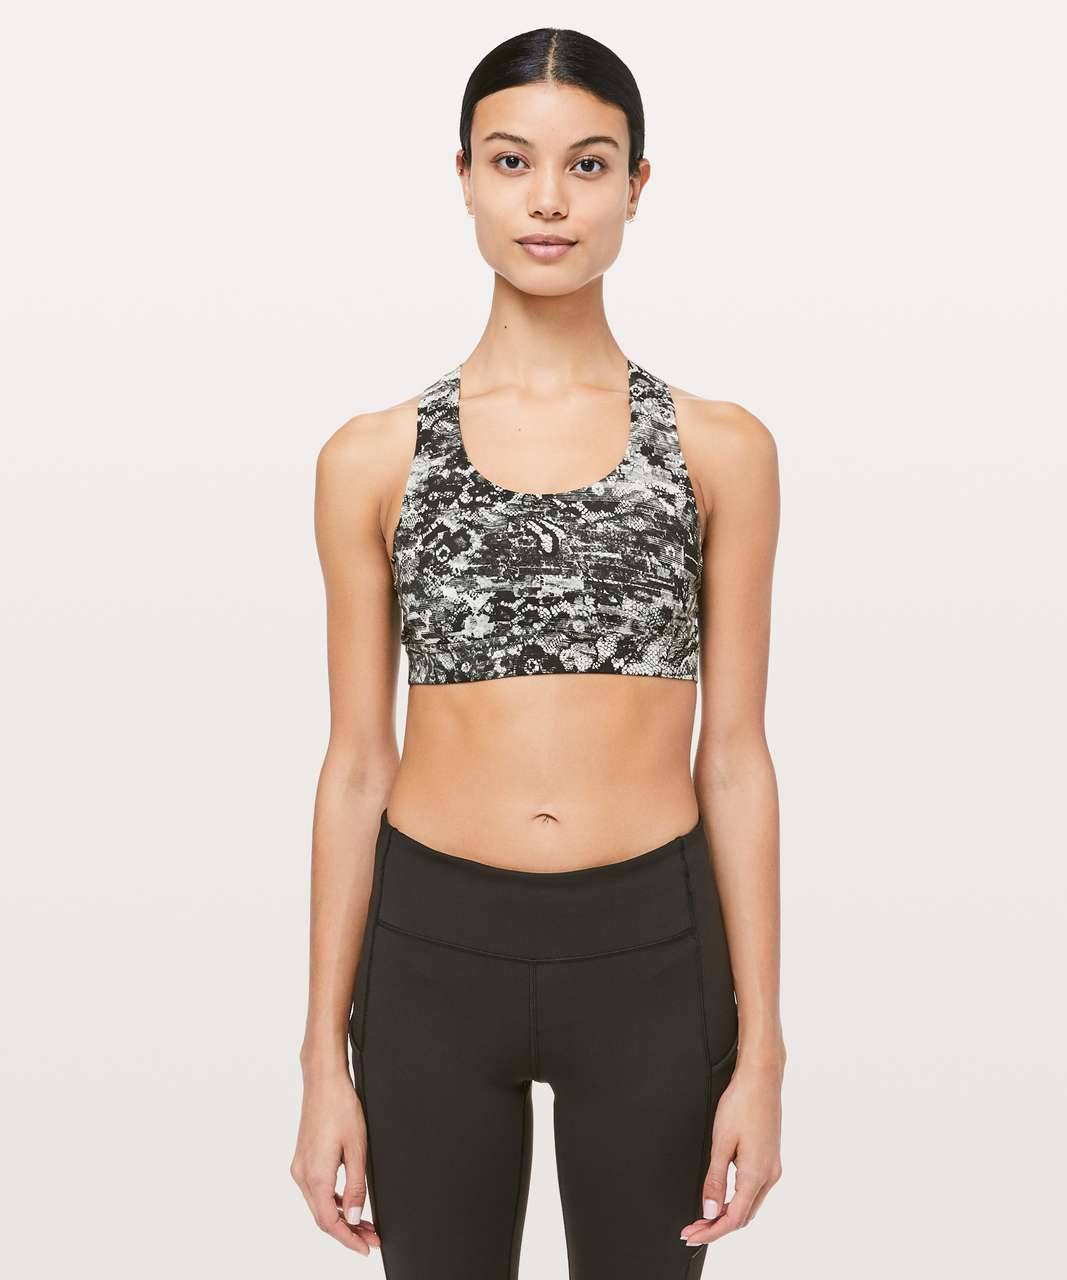 30fdbb5861 Lululemon All Sport Bra III - Masked Lace Starlight Black - lulu ...